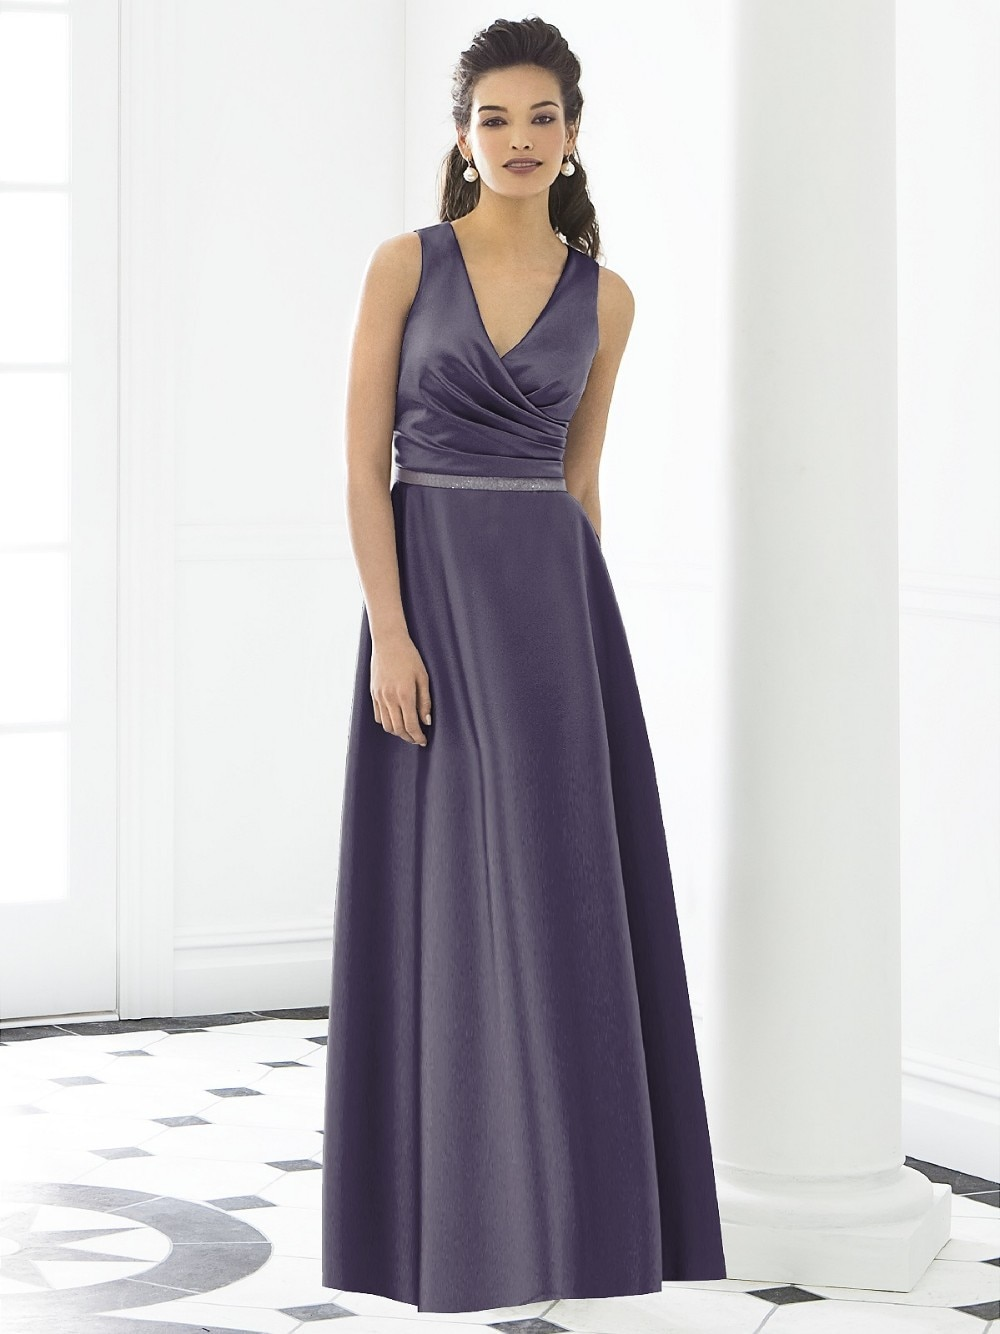 Exquisite New 2017 Floor-Length Bridesmaid Dresses V-neck Sleeveless Pleated Zipper back Prom Prom Gowns Satin Dress WE009